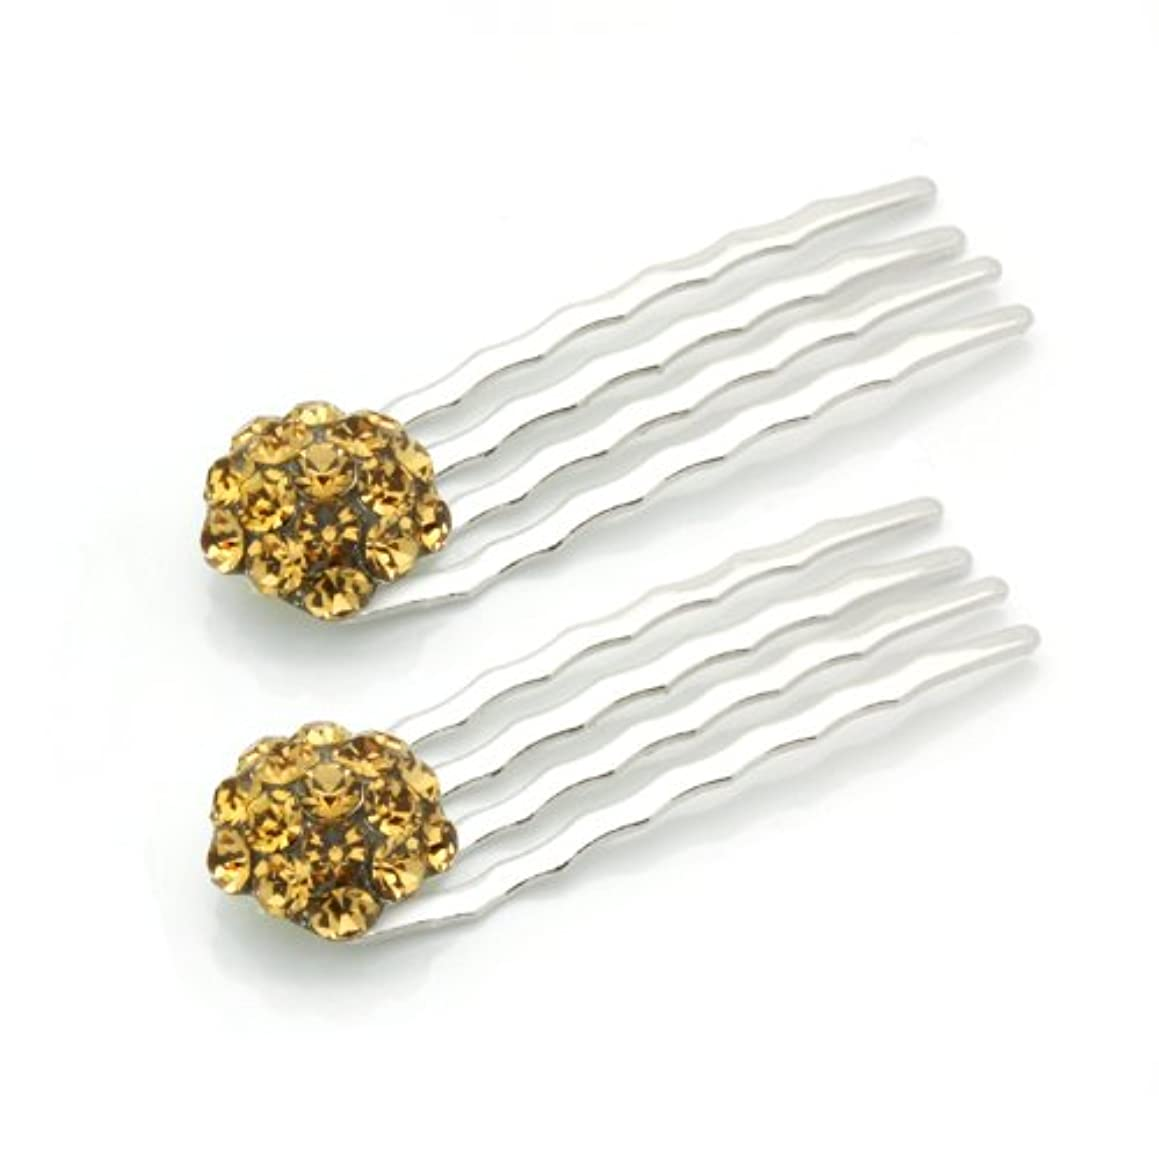 DoubleAccent Hair Jewelry Small Simulated Crystal Cluster Mini Bridal Hair Comb Set of Two, Light Brown